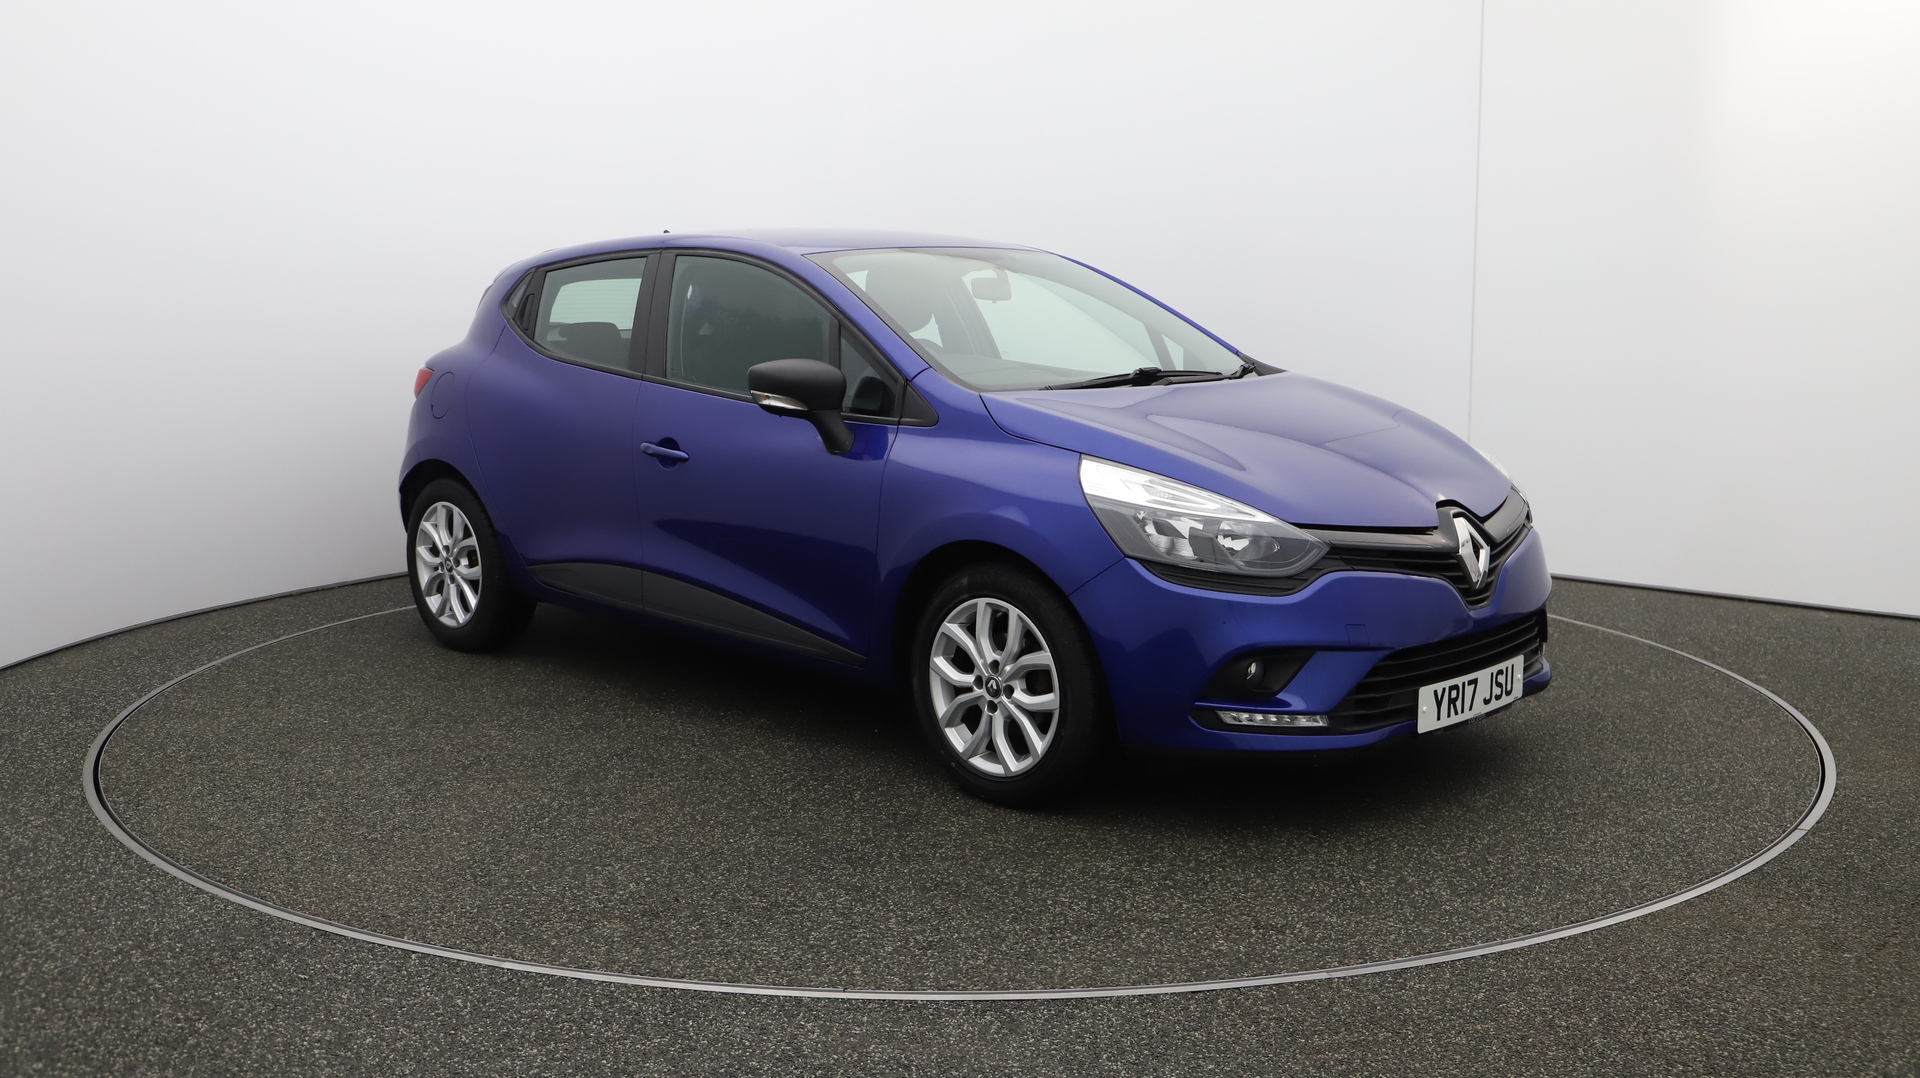 Renault Clio PLAY Service History